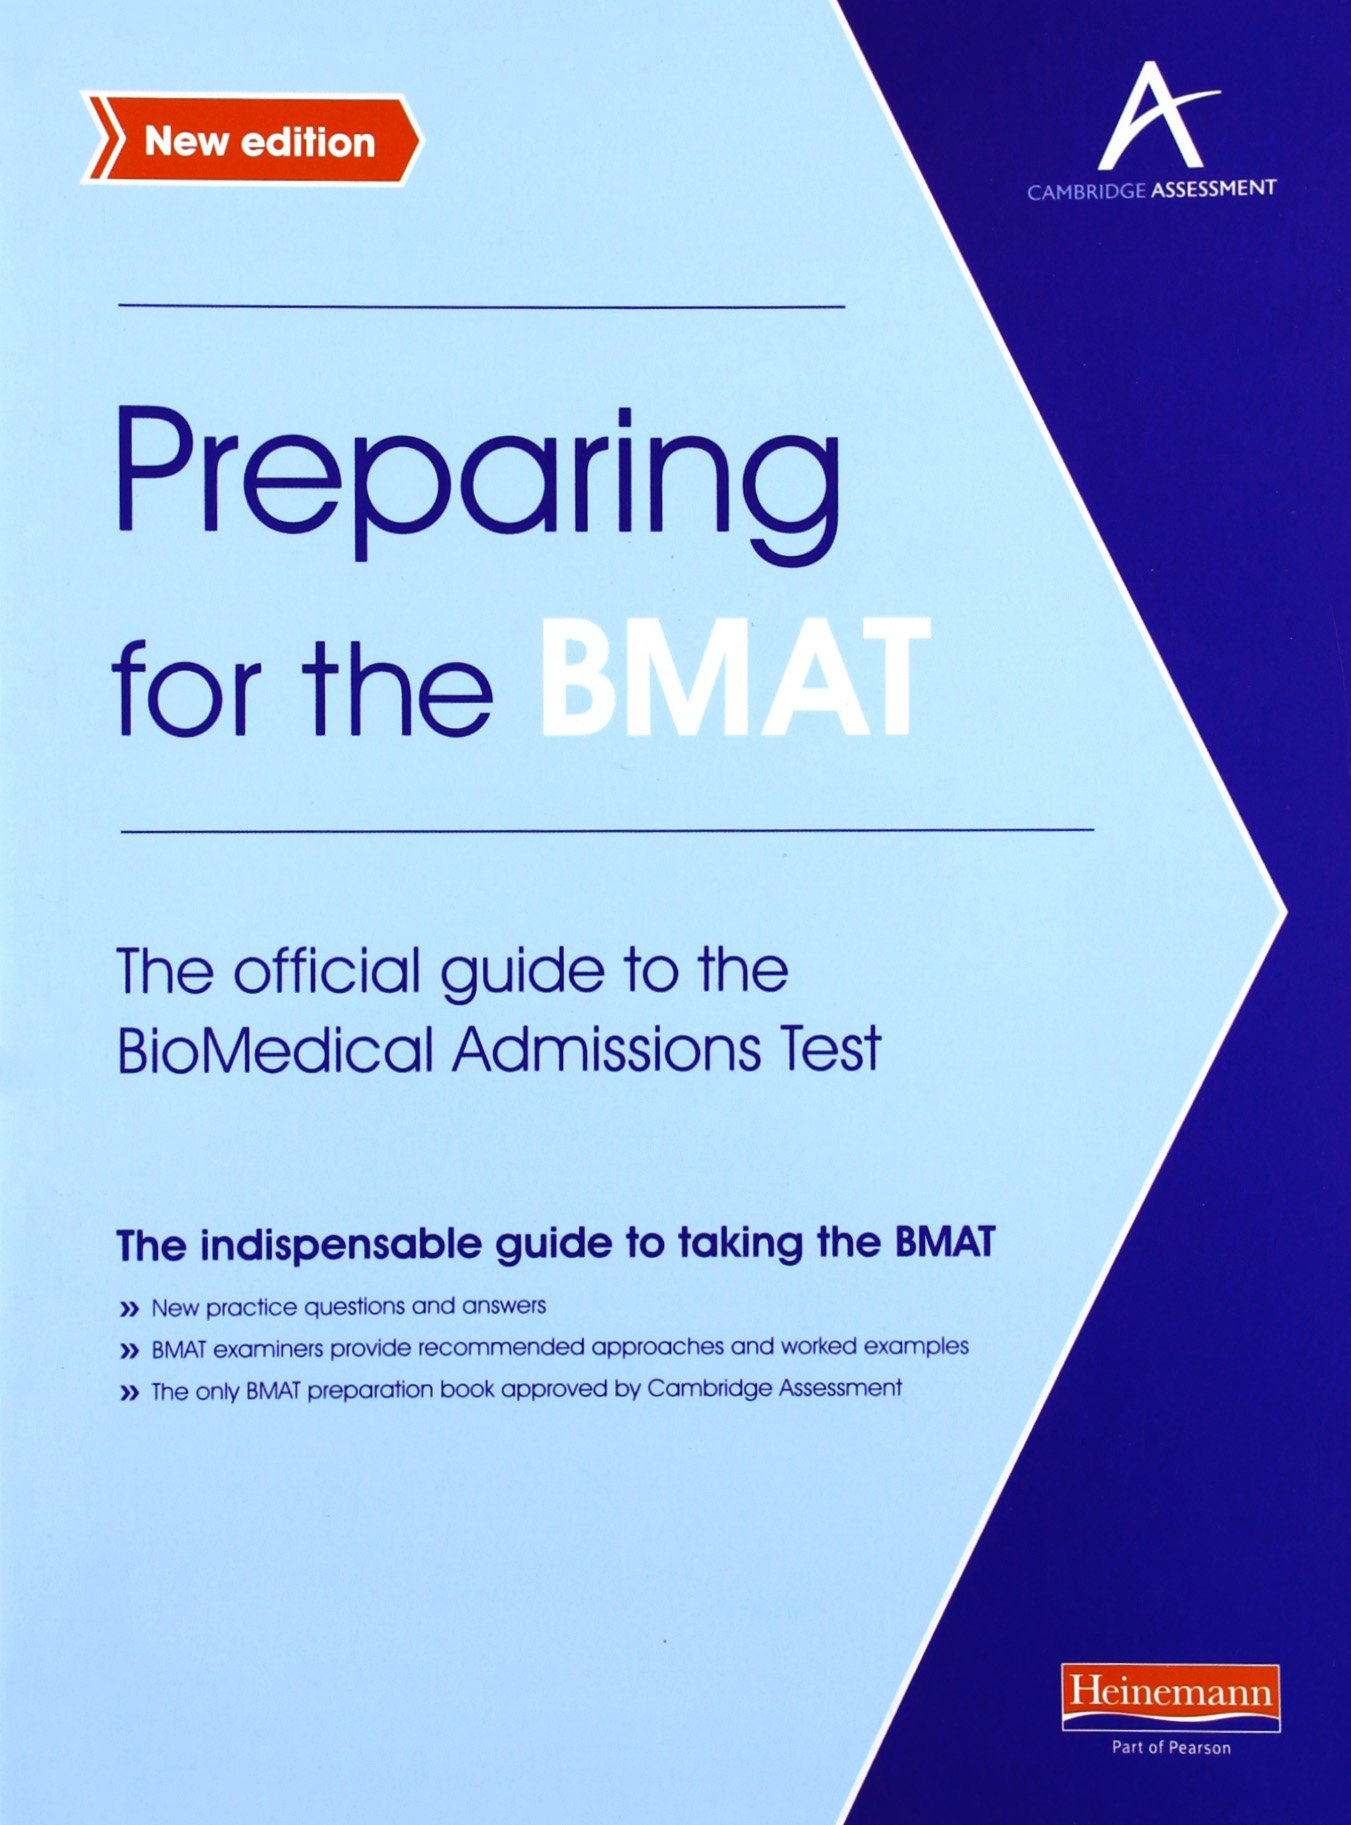 Preparing for the BMAT: The Official Guide to the BioMedical Admissions Test pdf